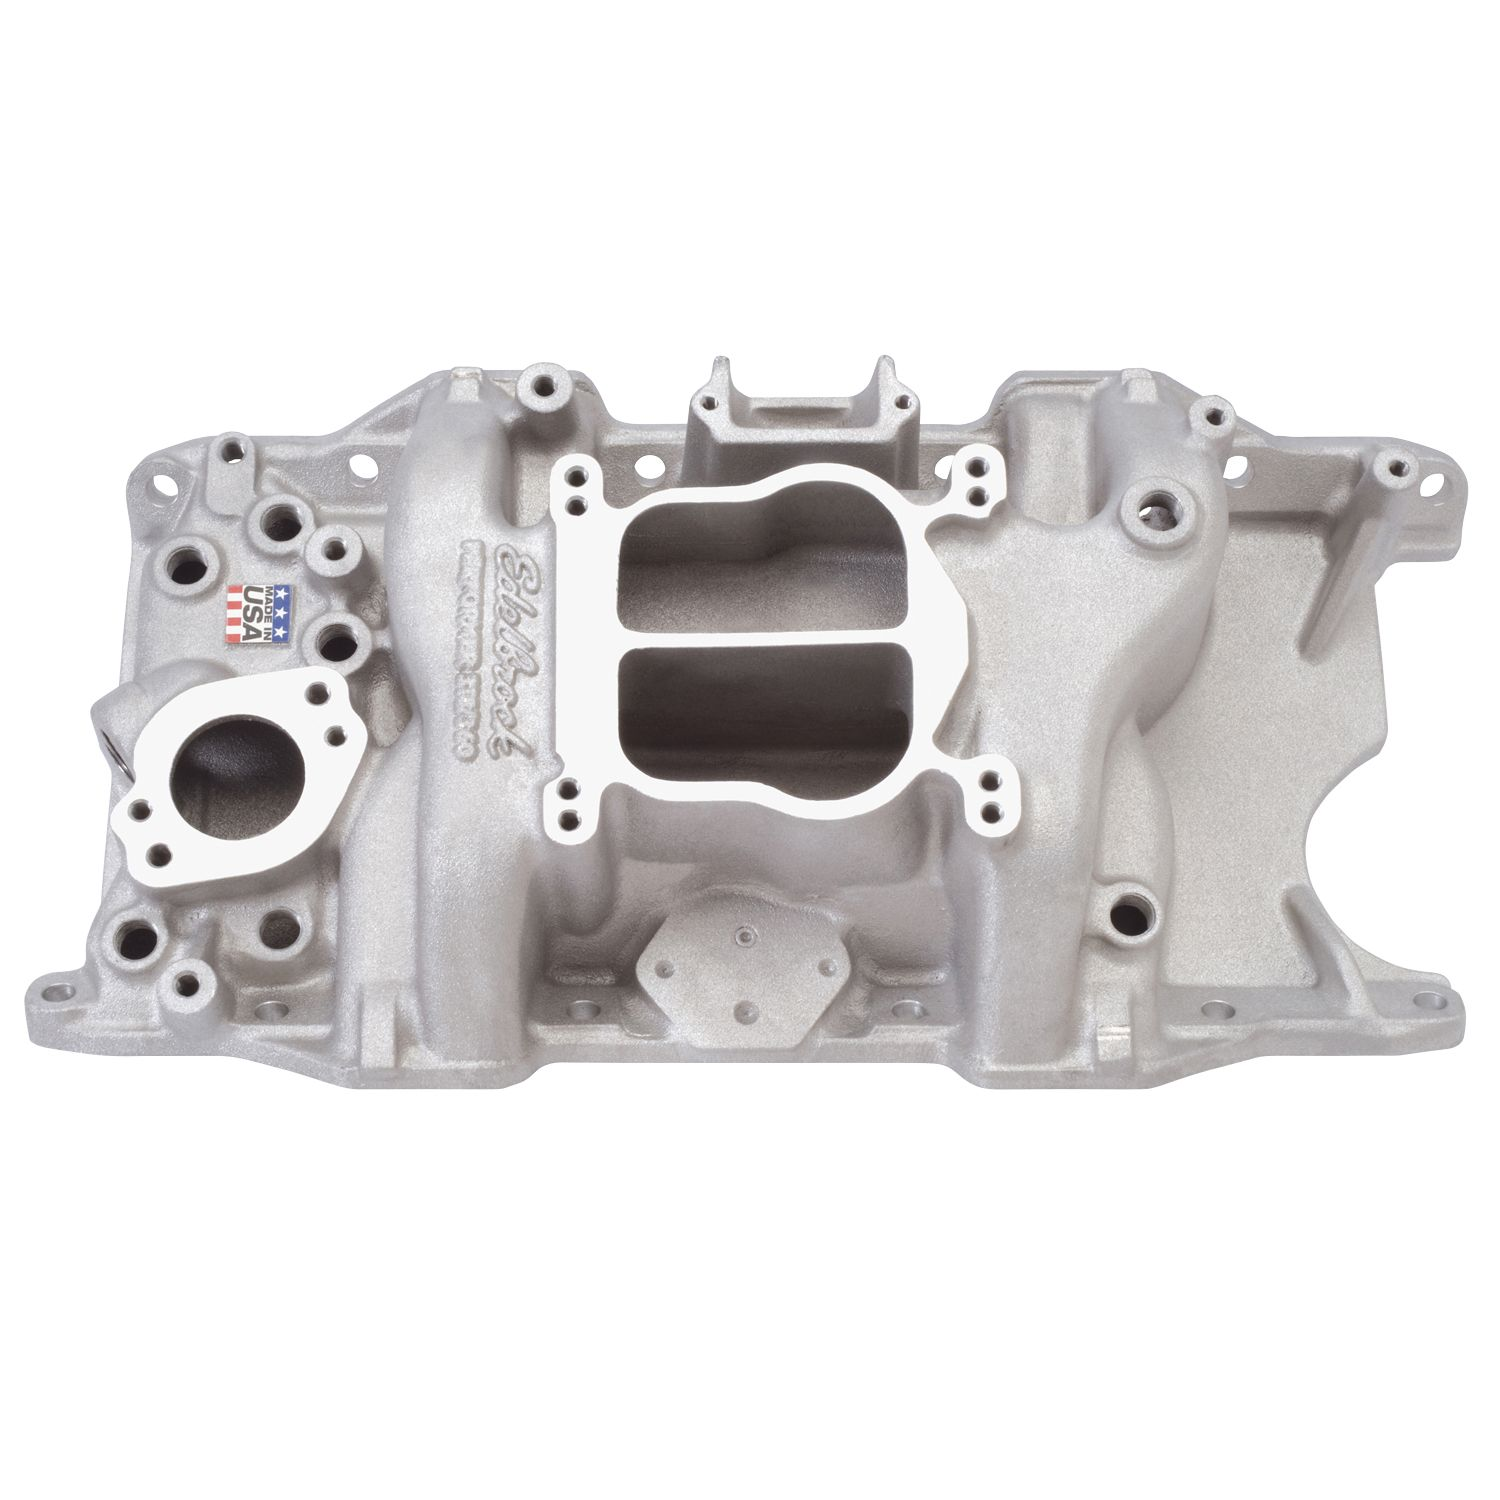 small block mopar intake manifold for L.A series engines